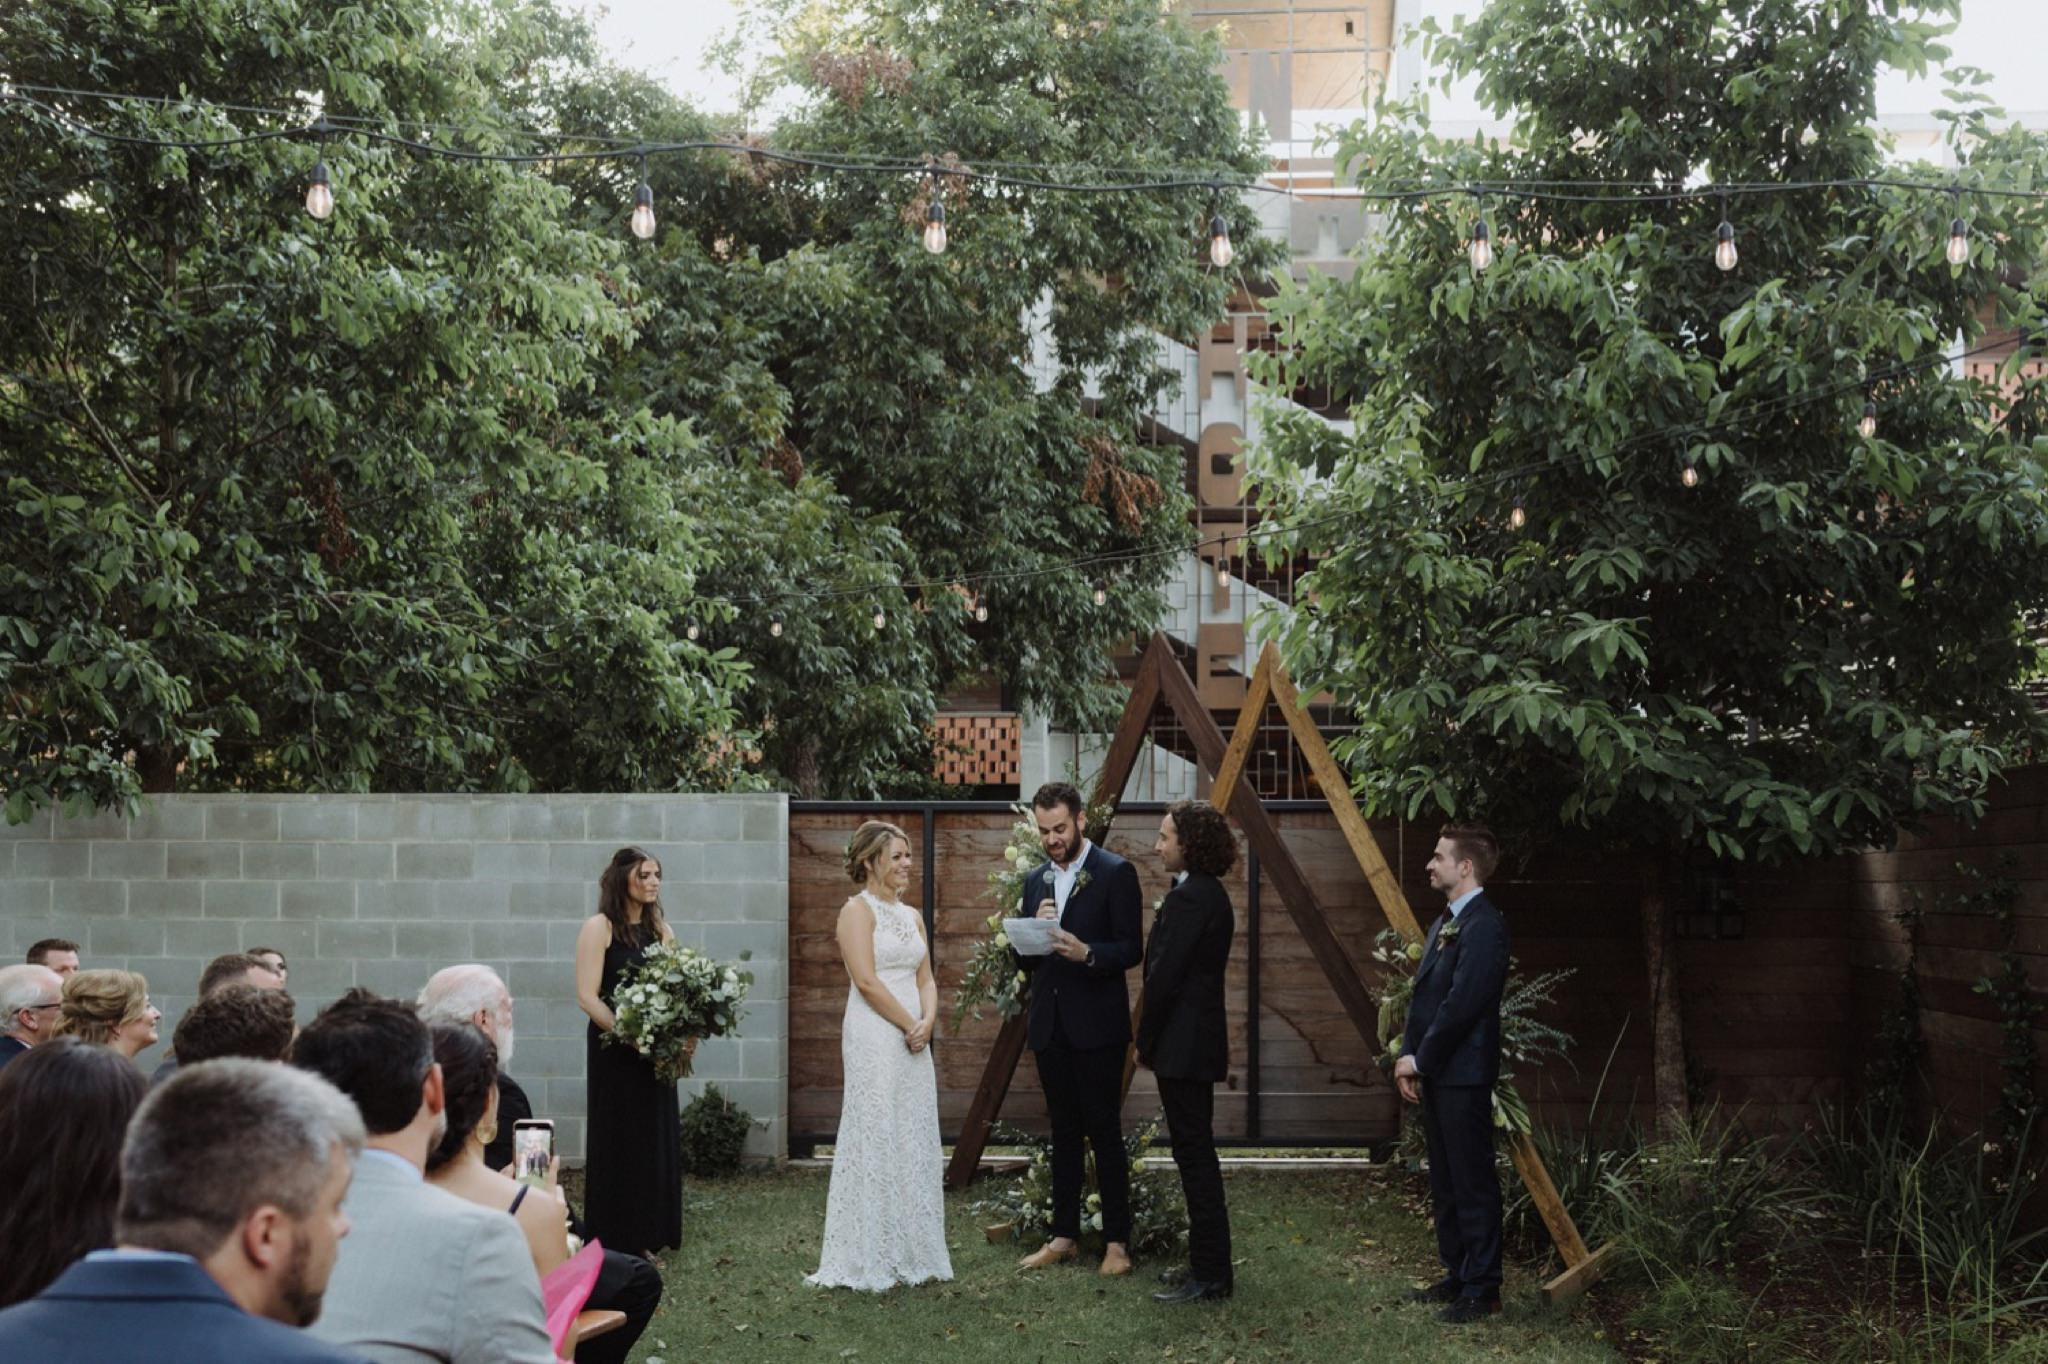 Intimate ceremony for a carpenter hotel wedding with a geometric altar